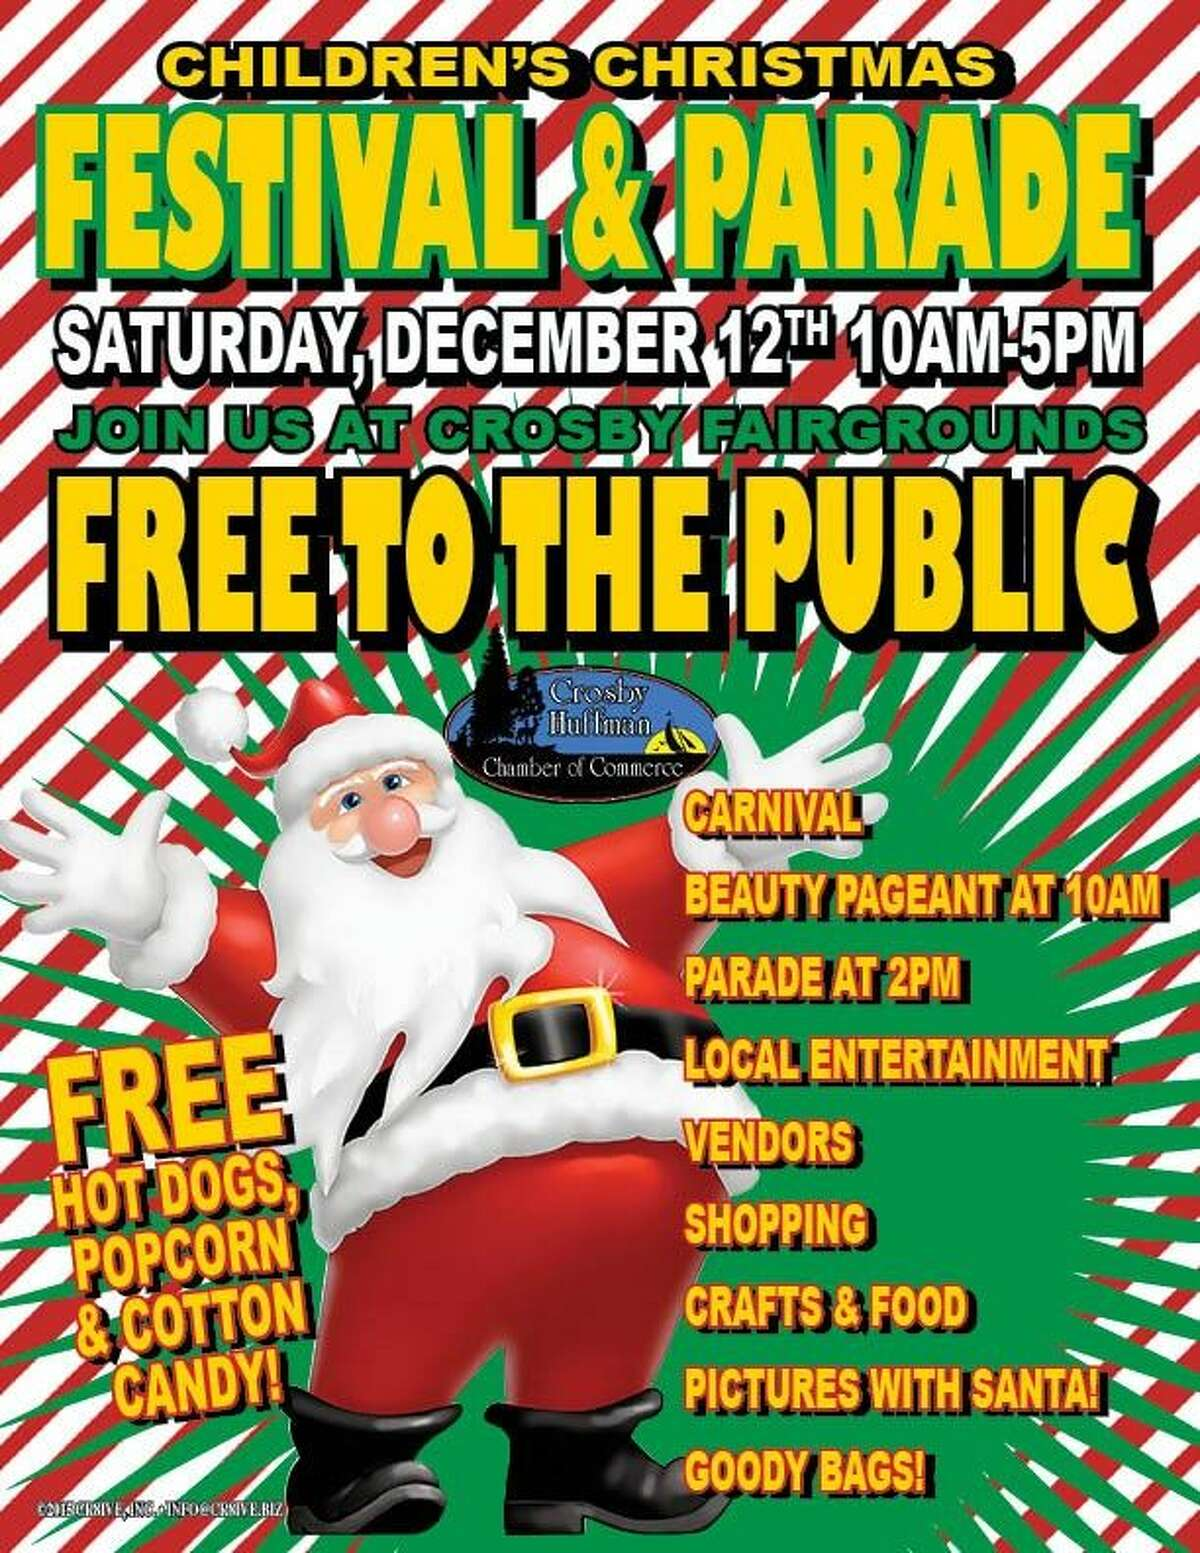 The Crosby-Huffman Chamber of Commerce invites the community to the annual Children's Festival and Parade at the Crosby Fairgrounds on Saturday, Dec. 12 from 10 a.m. to 5 p.m.